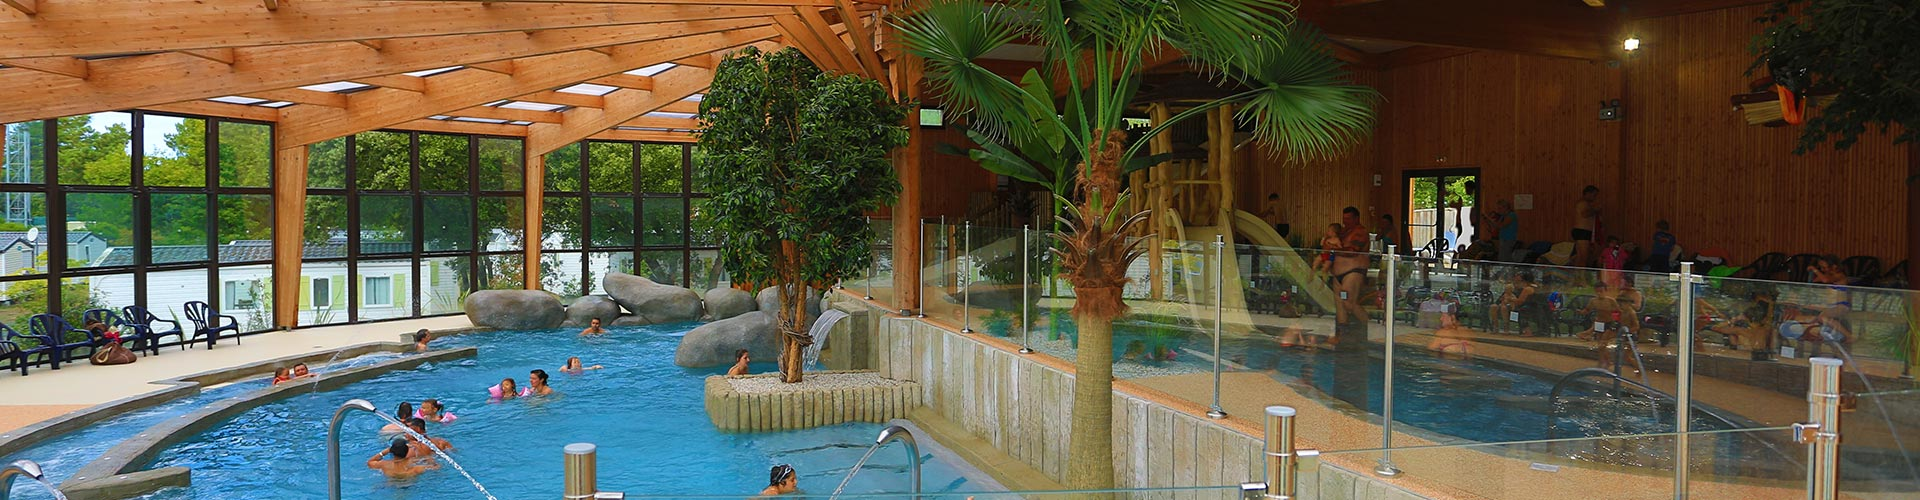 Le palace campsite in soulac sur mer 4 star campsite in for Camping gironde piscine